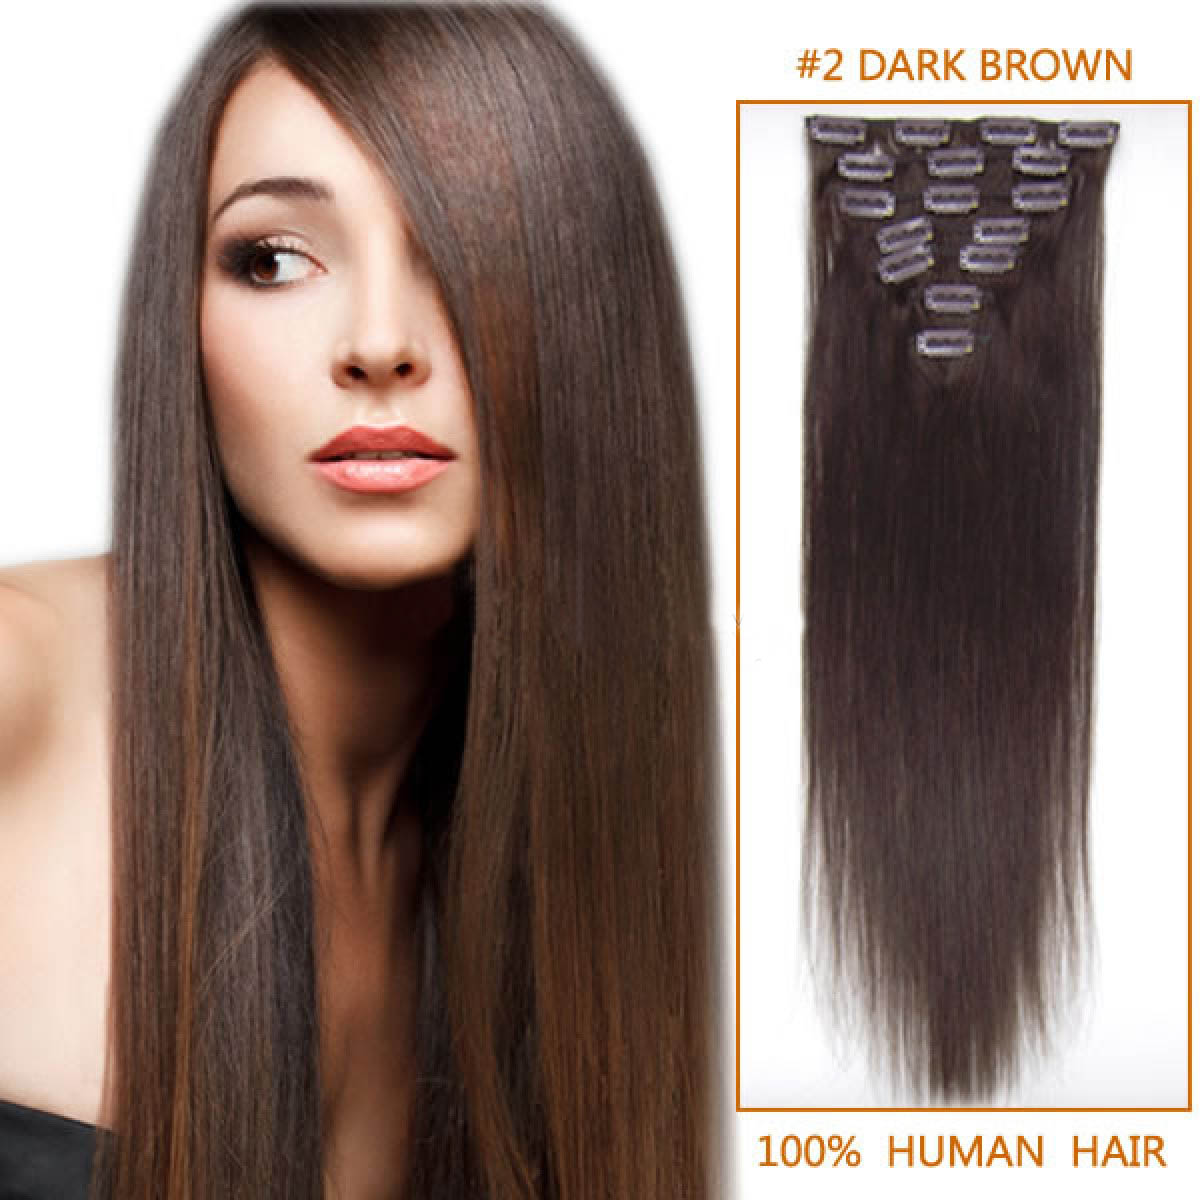 Inch 2 dark brown clip in remy human hair extensions 12pcs 20 inch 2 dark brown clip in remy human hair extensions 12pcs pmusecretfo Images